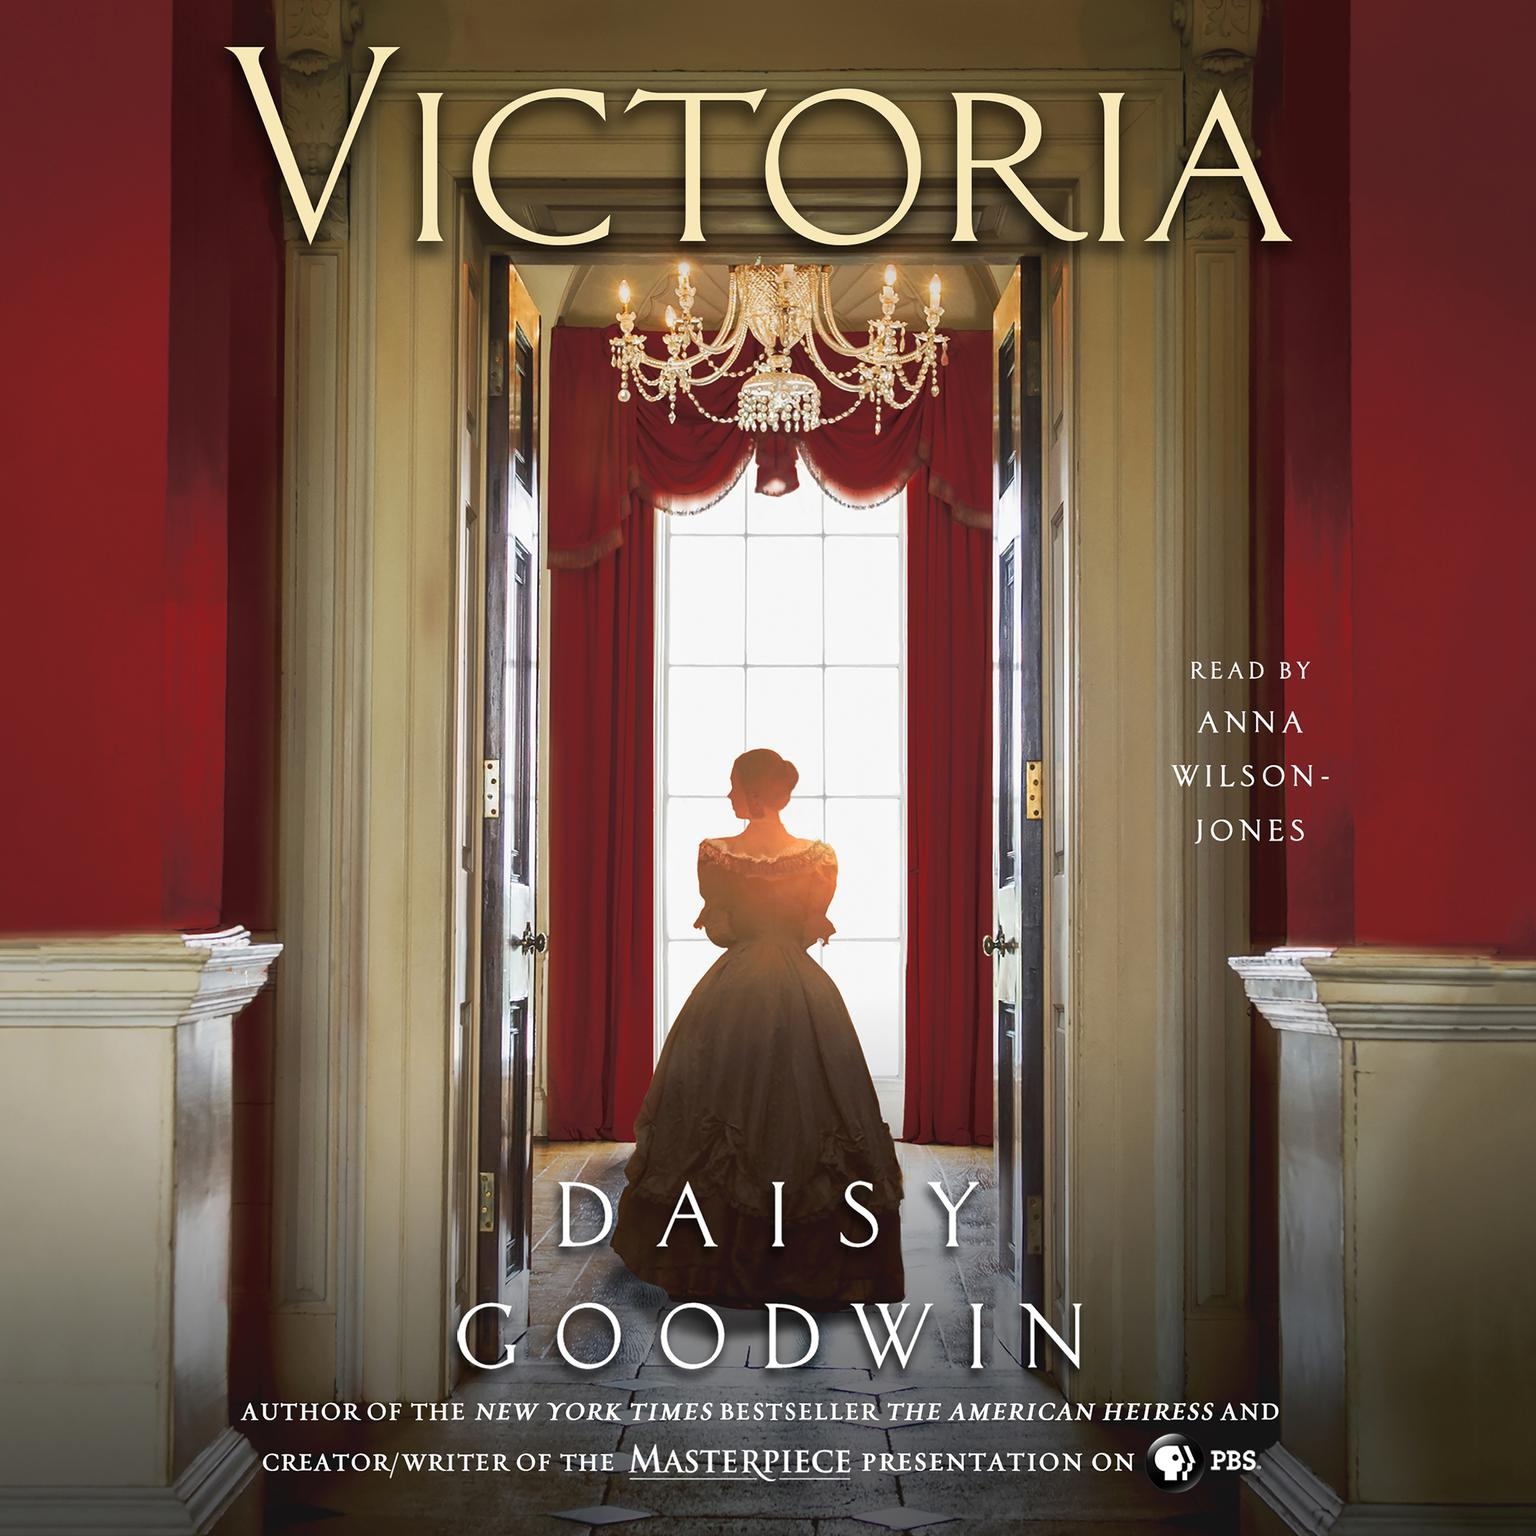 Printable Victoria: A novel of a young queen by the Creator/Writer of the Masterpiece Presentation on PBS Audiobook Cover Art